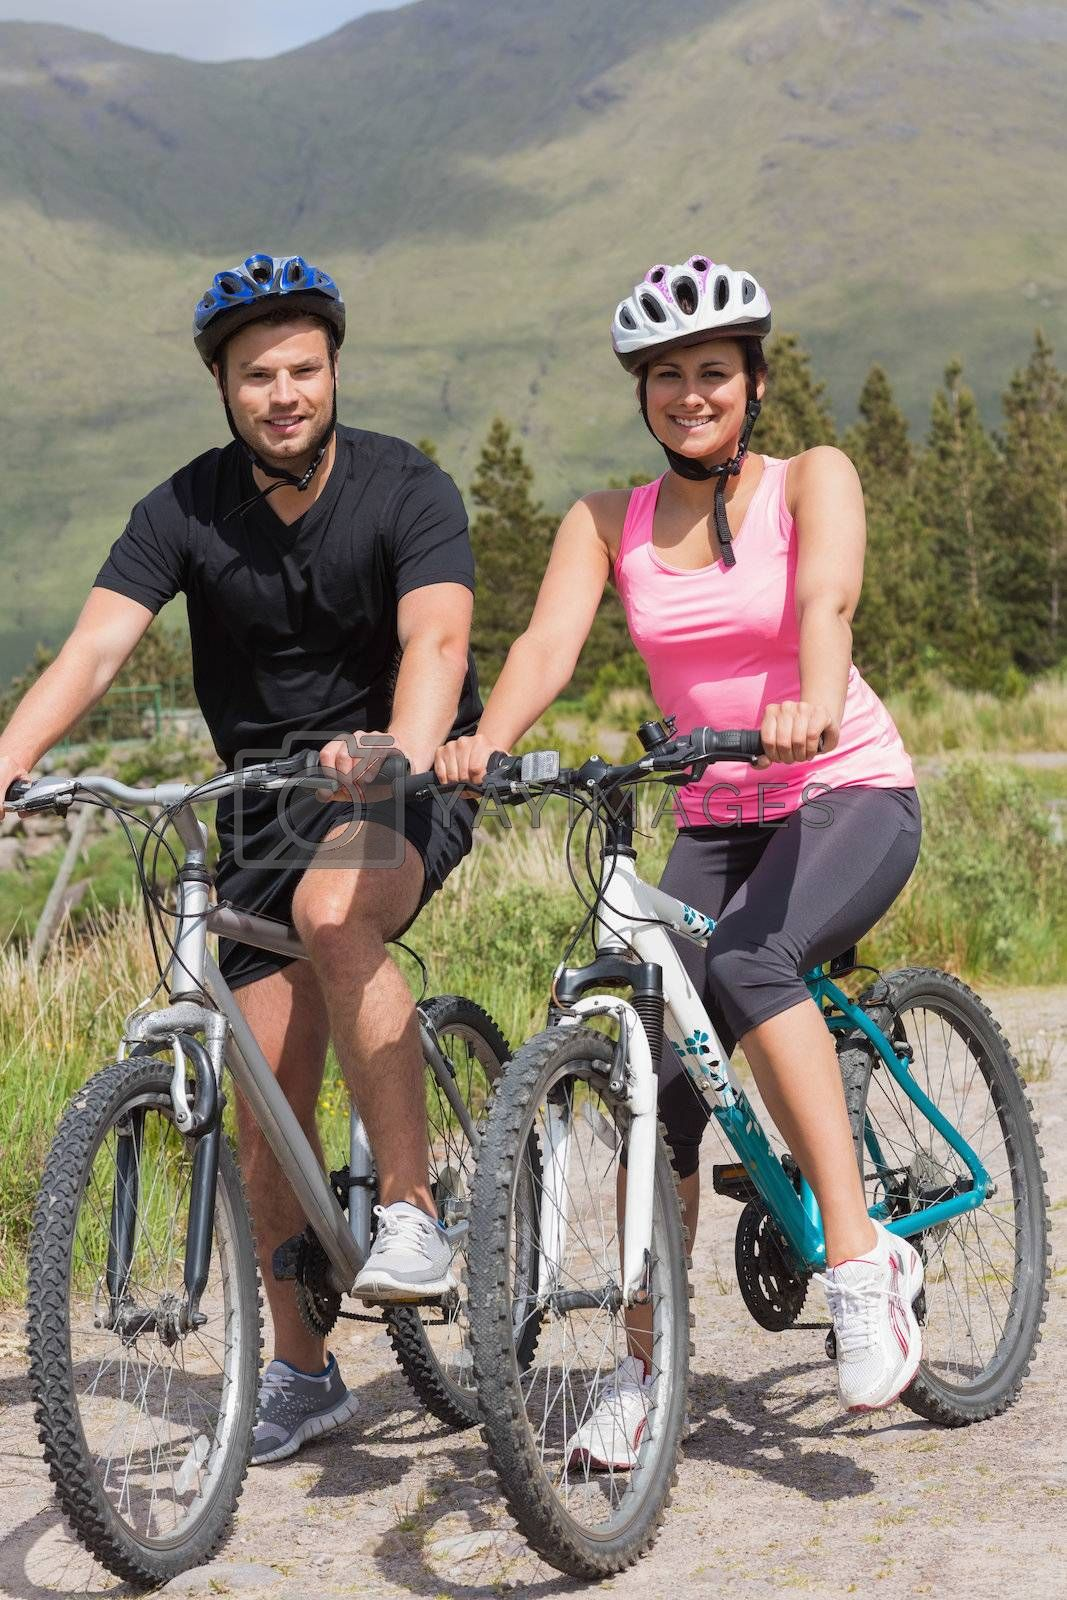 Happy couple on a bike ride by Wavebreakmedia